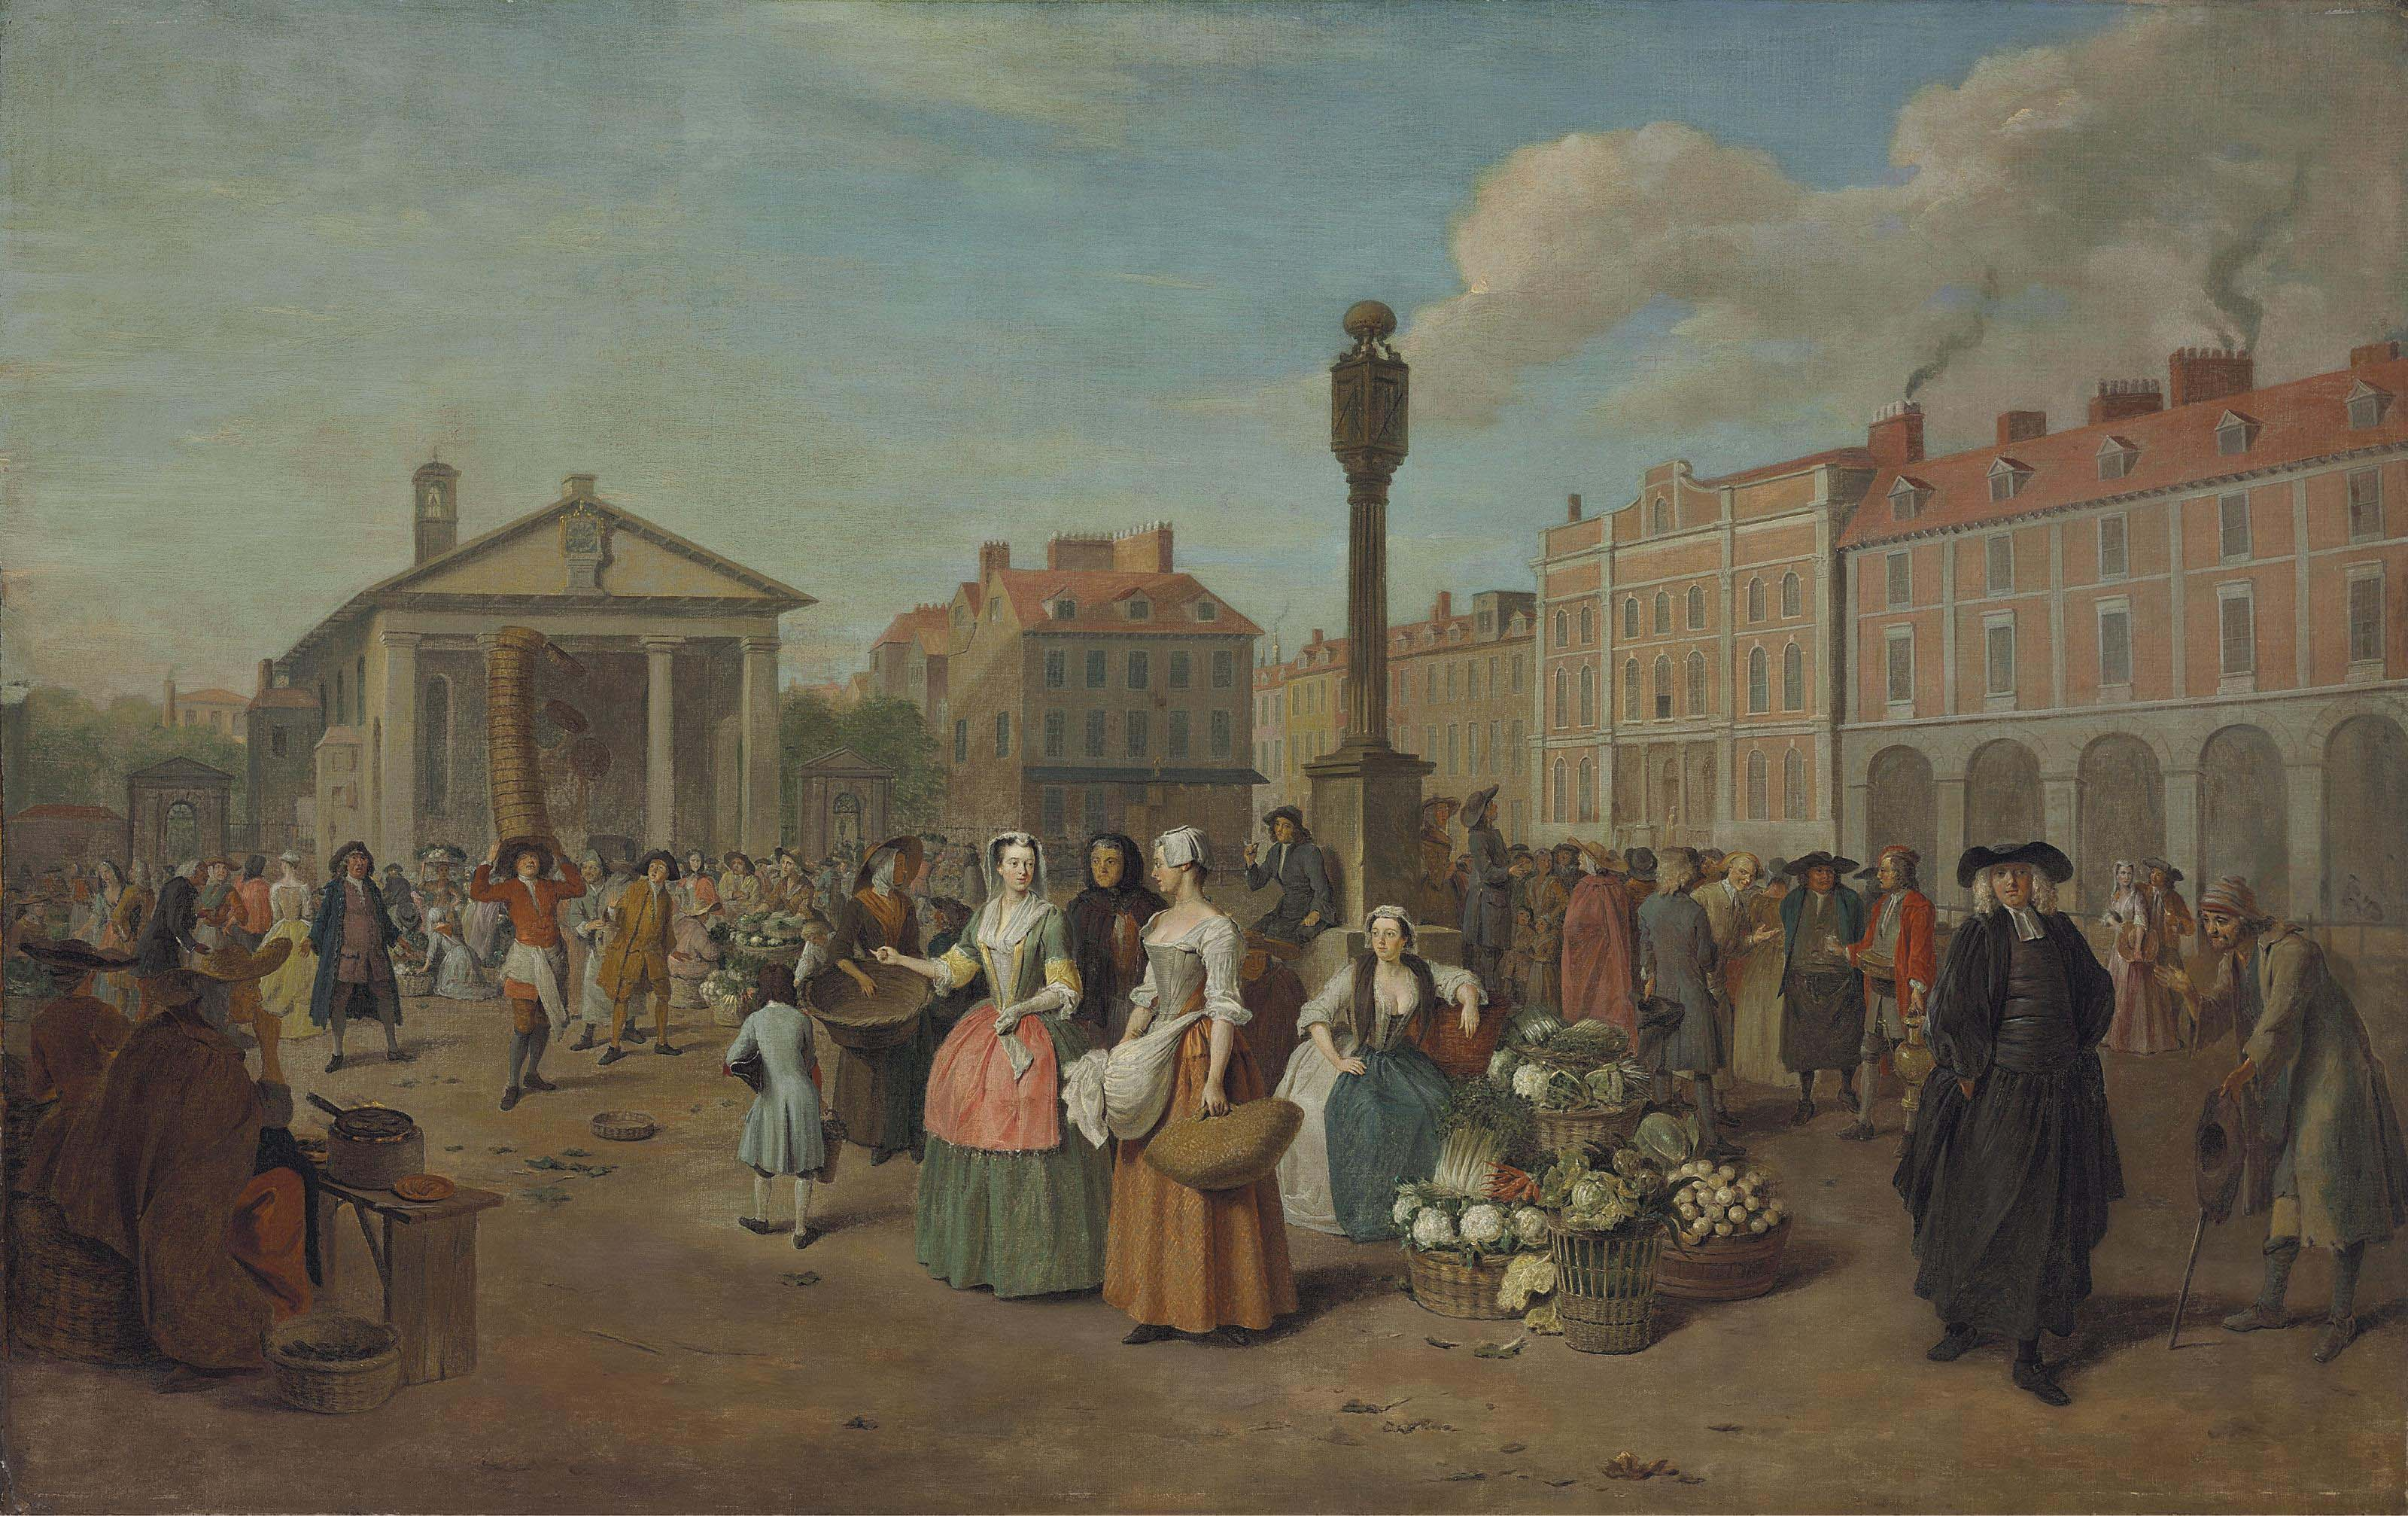 A view of Covent Garden, London, on market day